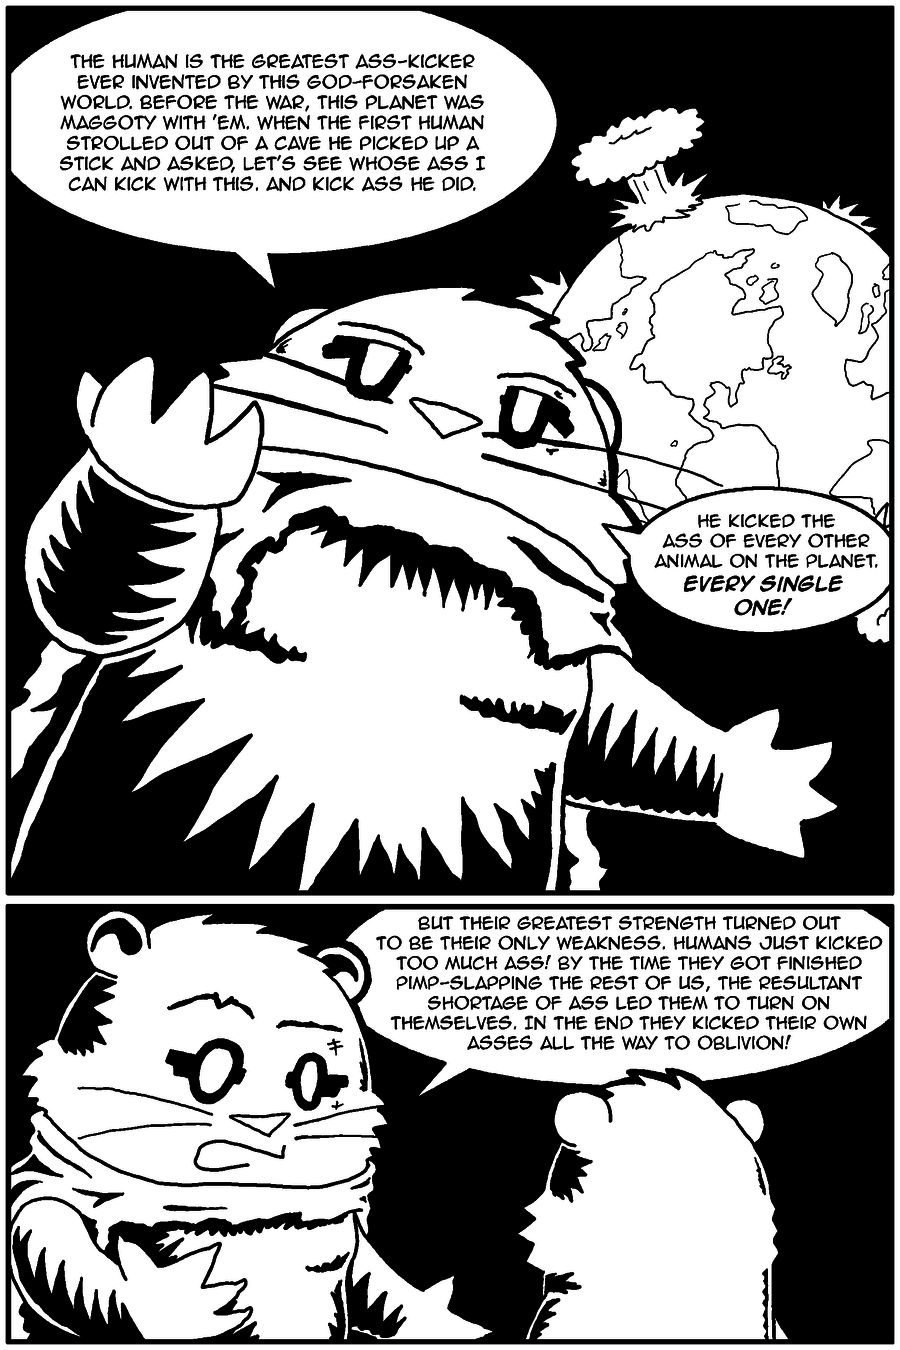 The Last Human Alive, Page 12